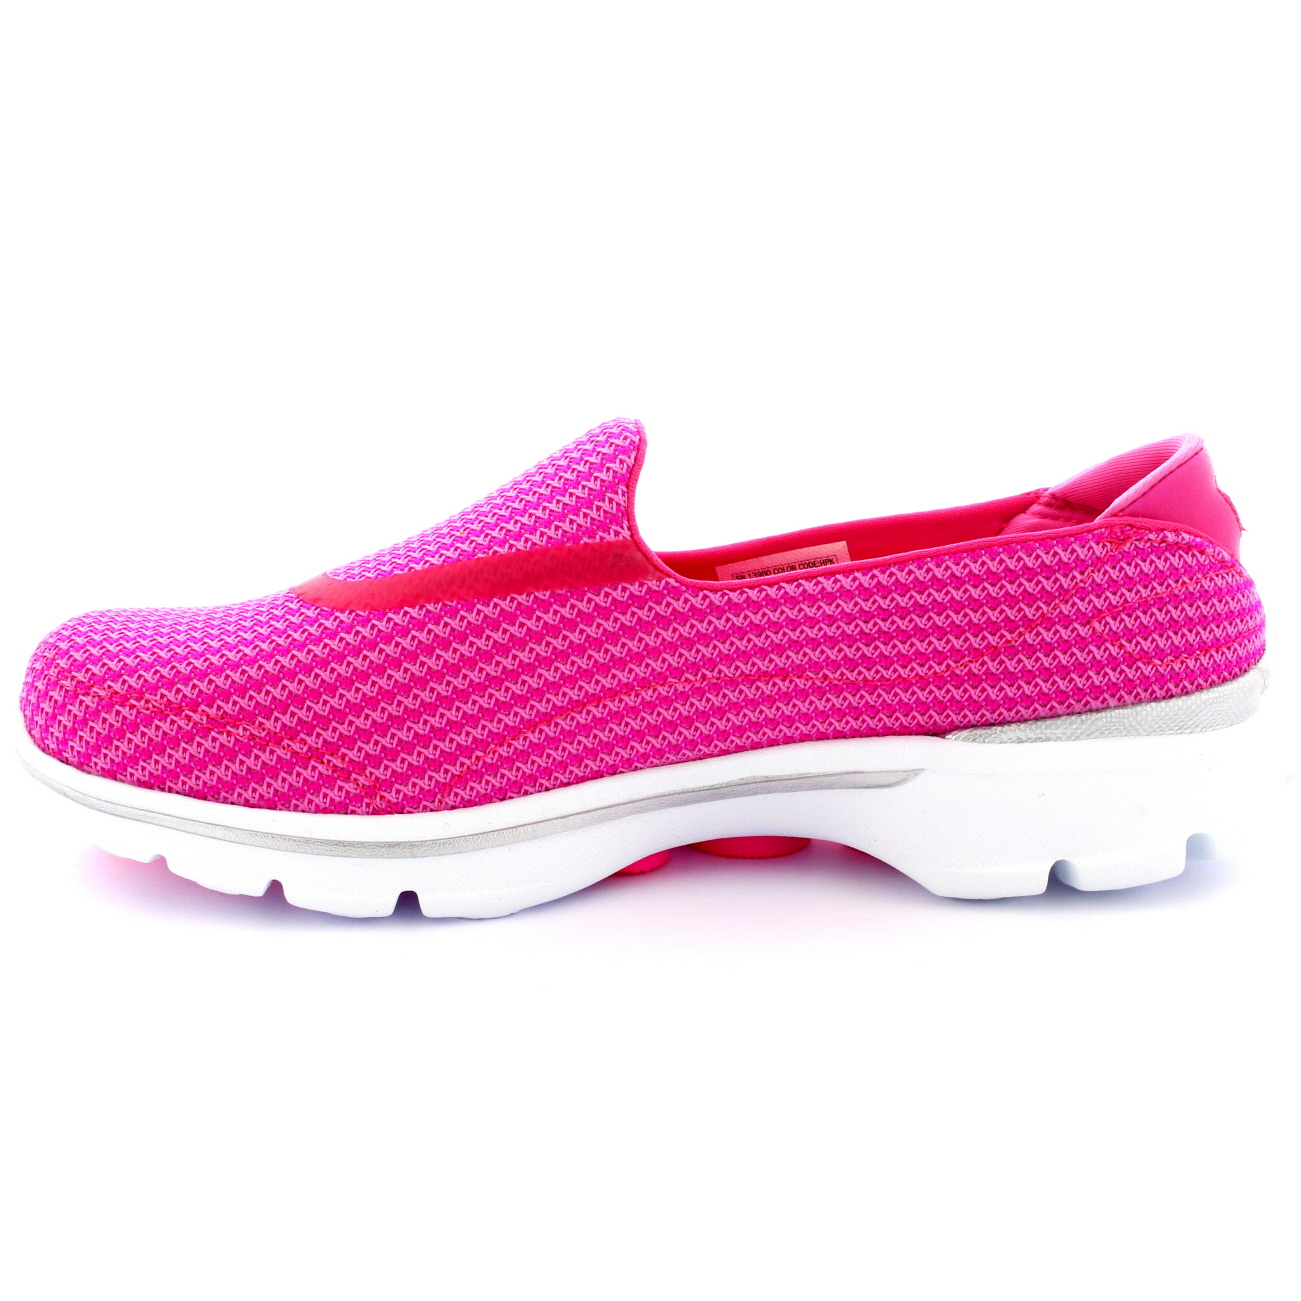 womens skechers go walk 3 hot pink walking slip on. Black Bedroom Furniture Sets. Home Design Ideas